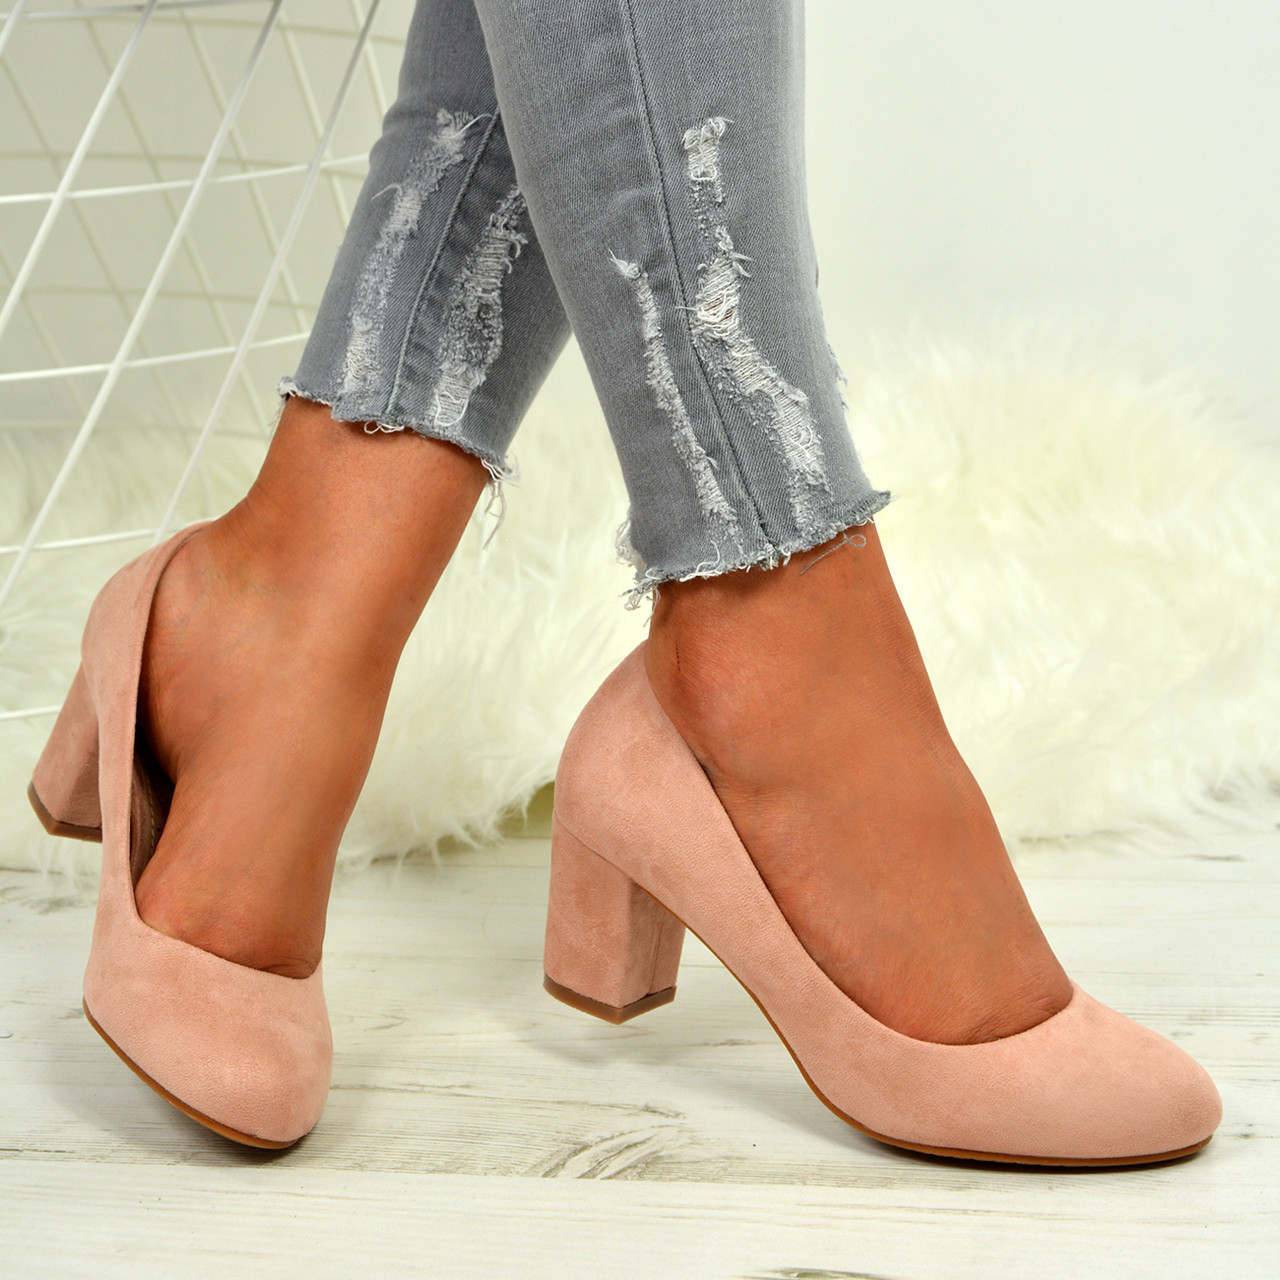 a97decbd5a56 Ladies Womens Mid High Block Heel Slip On Court Pumps Comfy Party Shoes  Sizes Uk